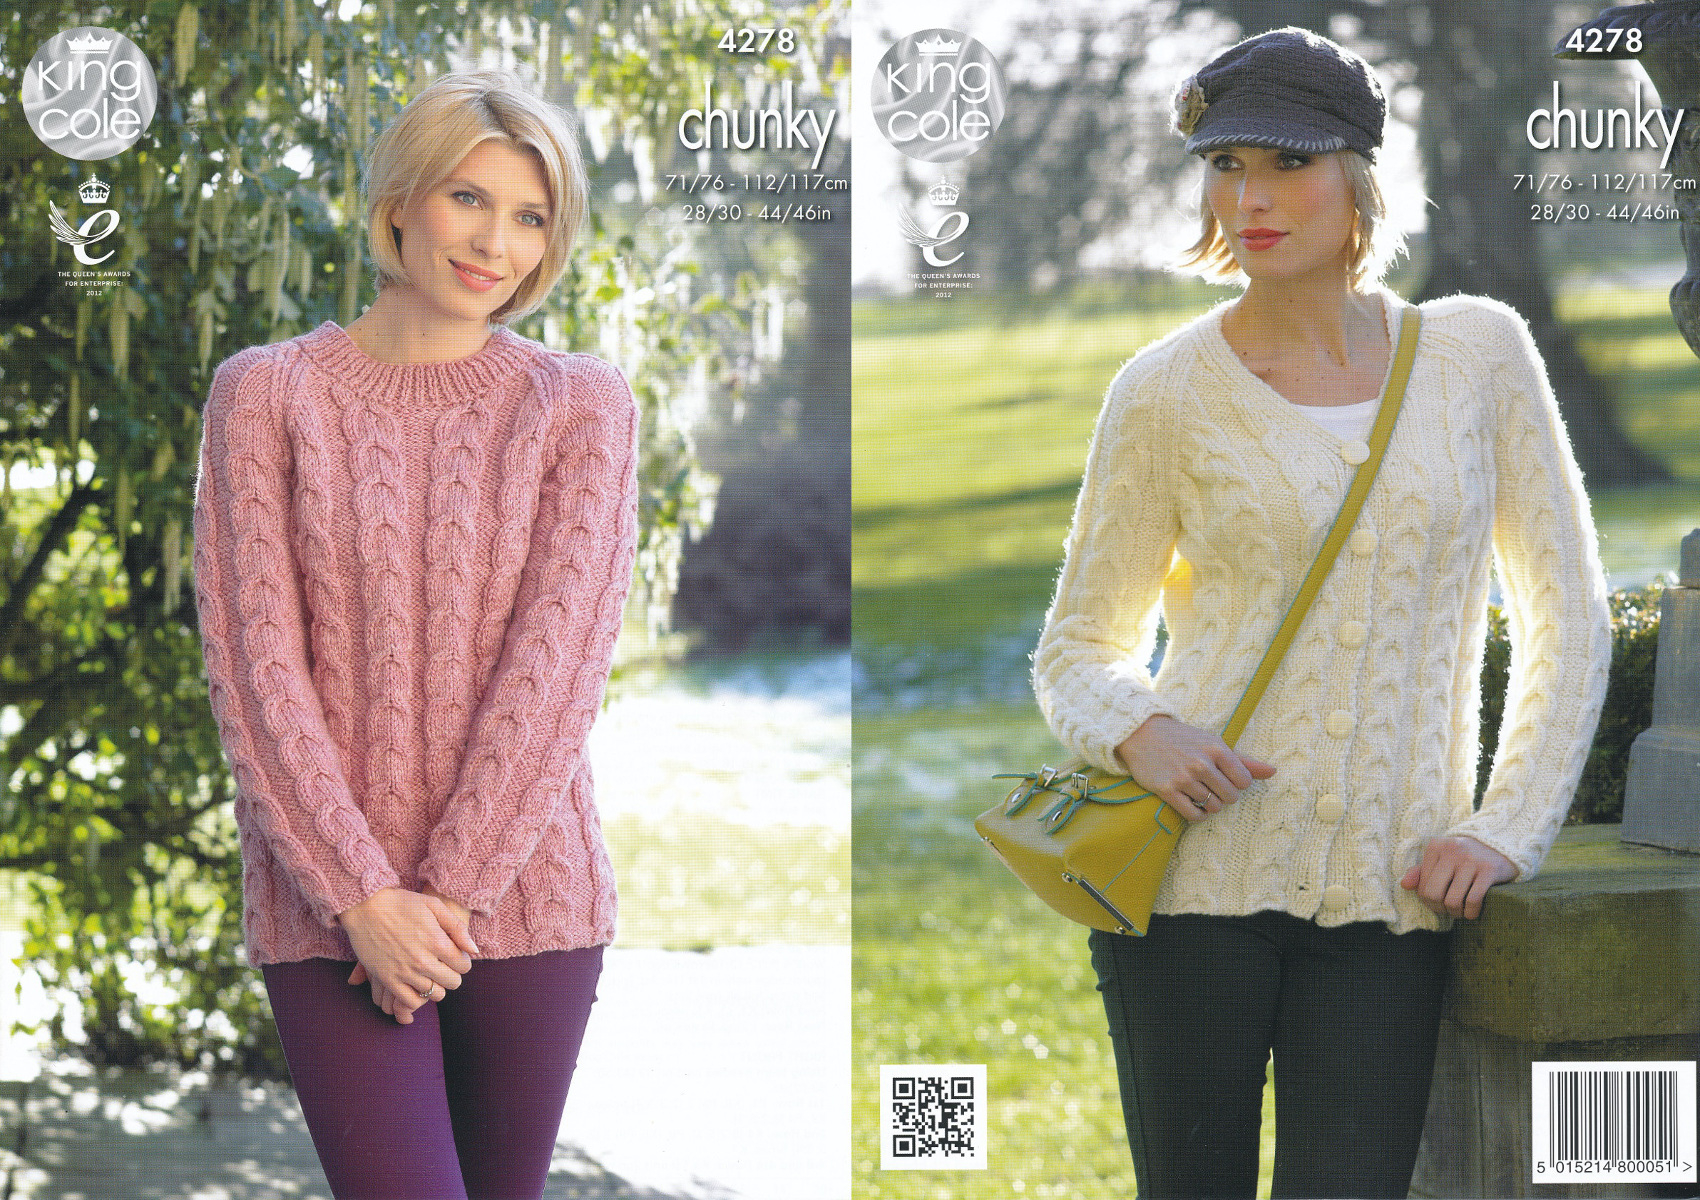 Knitting Patterns For Women Details About King Cole Womens Chunky Knitting Pattern Ladies Cable Knit Sweater Cardigan 4278